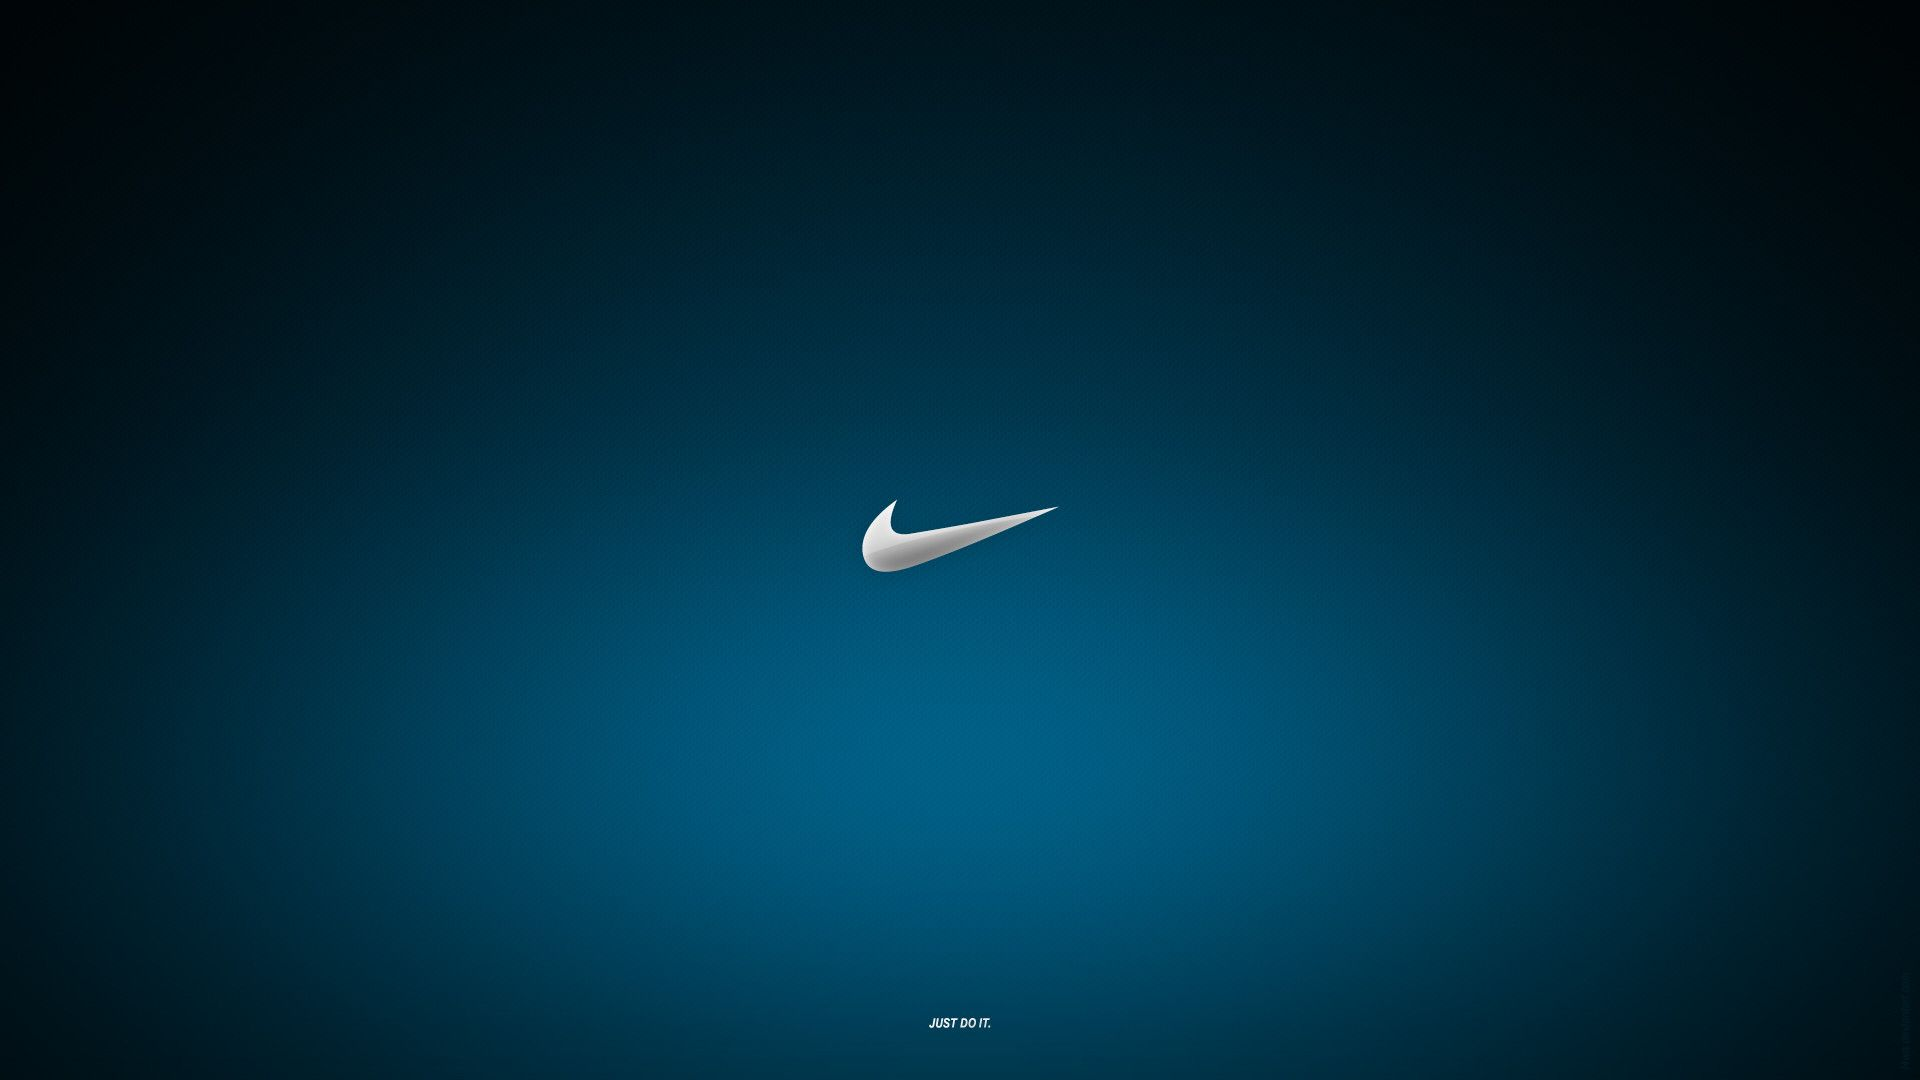 Nike Wallpaper Hd 1080p 75 Images Nike Wallpaper Backgrounds Nike Wallpaper Nike Logo Wallpapers